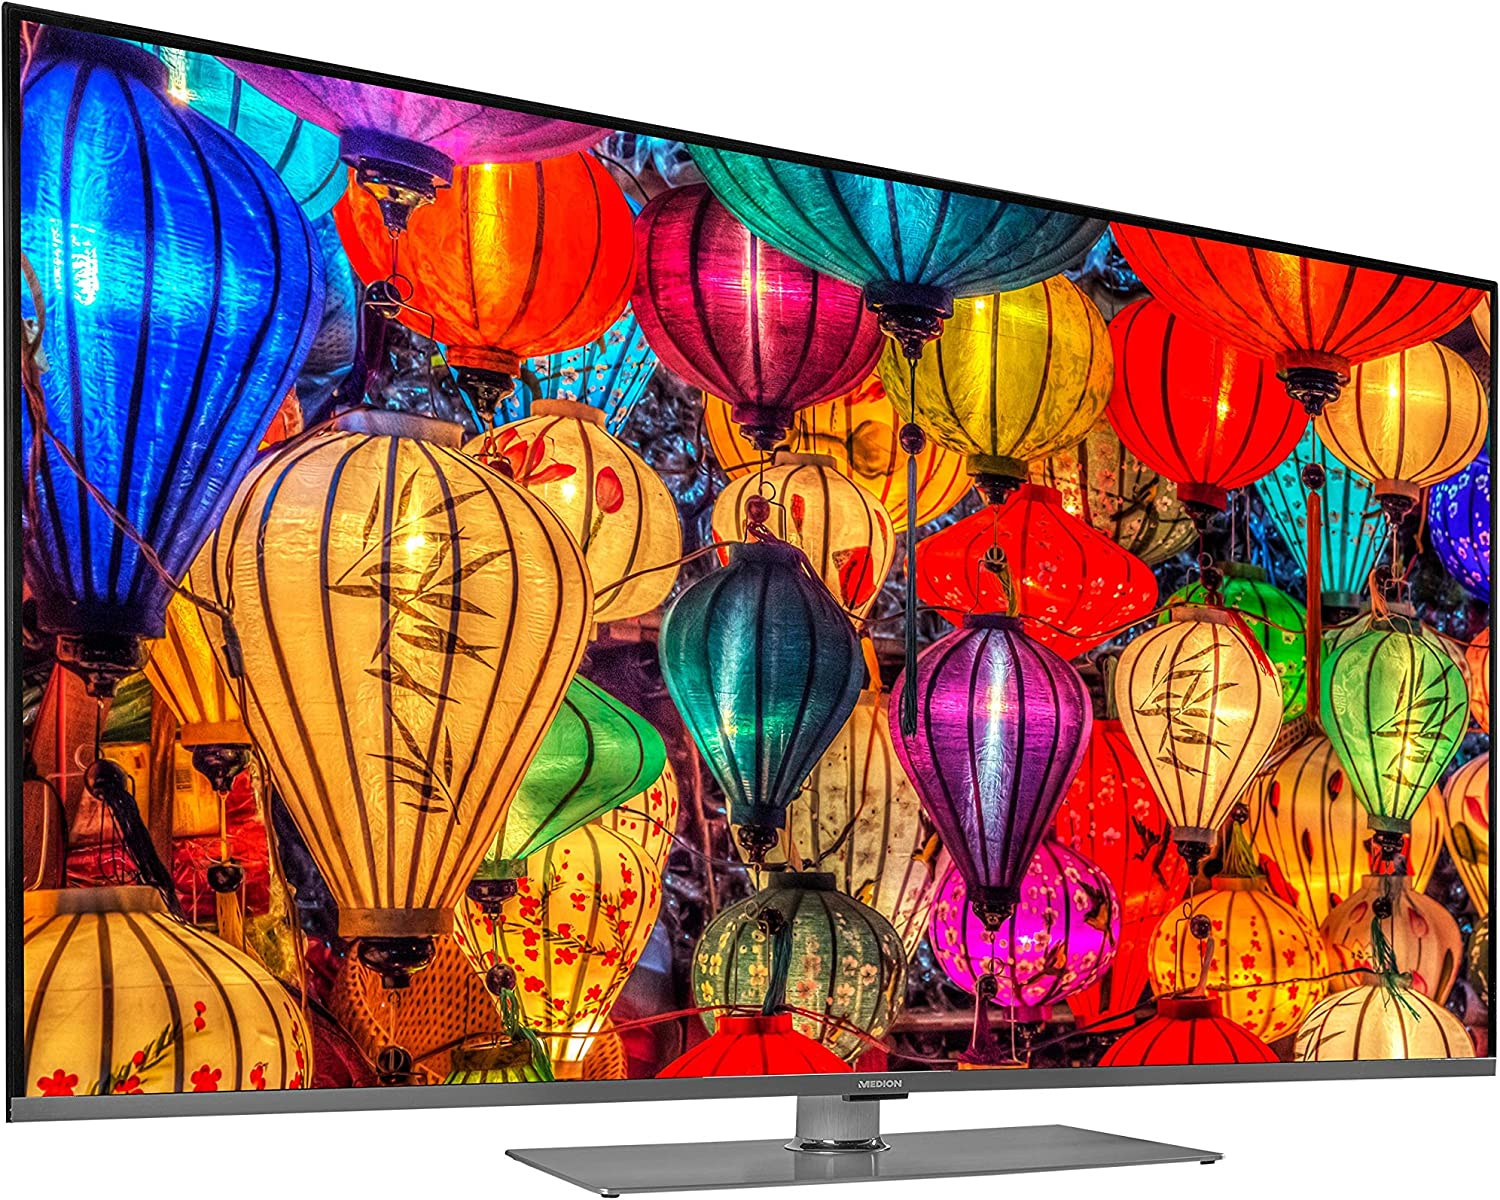 65 Zoll UHD Fernseher Smart-TV, 4K Ultra HD, Dolby Vision HDR, WCG ...